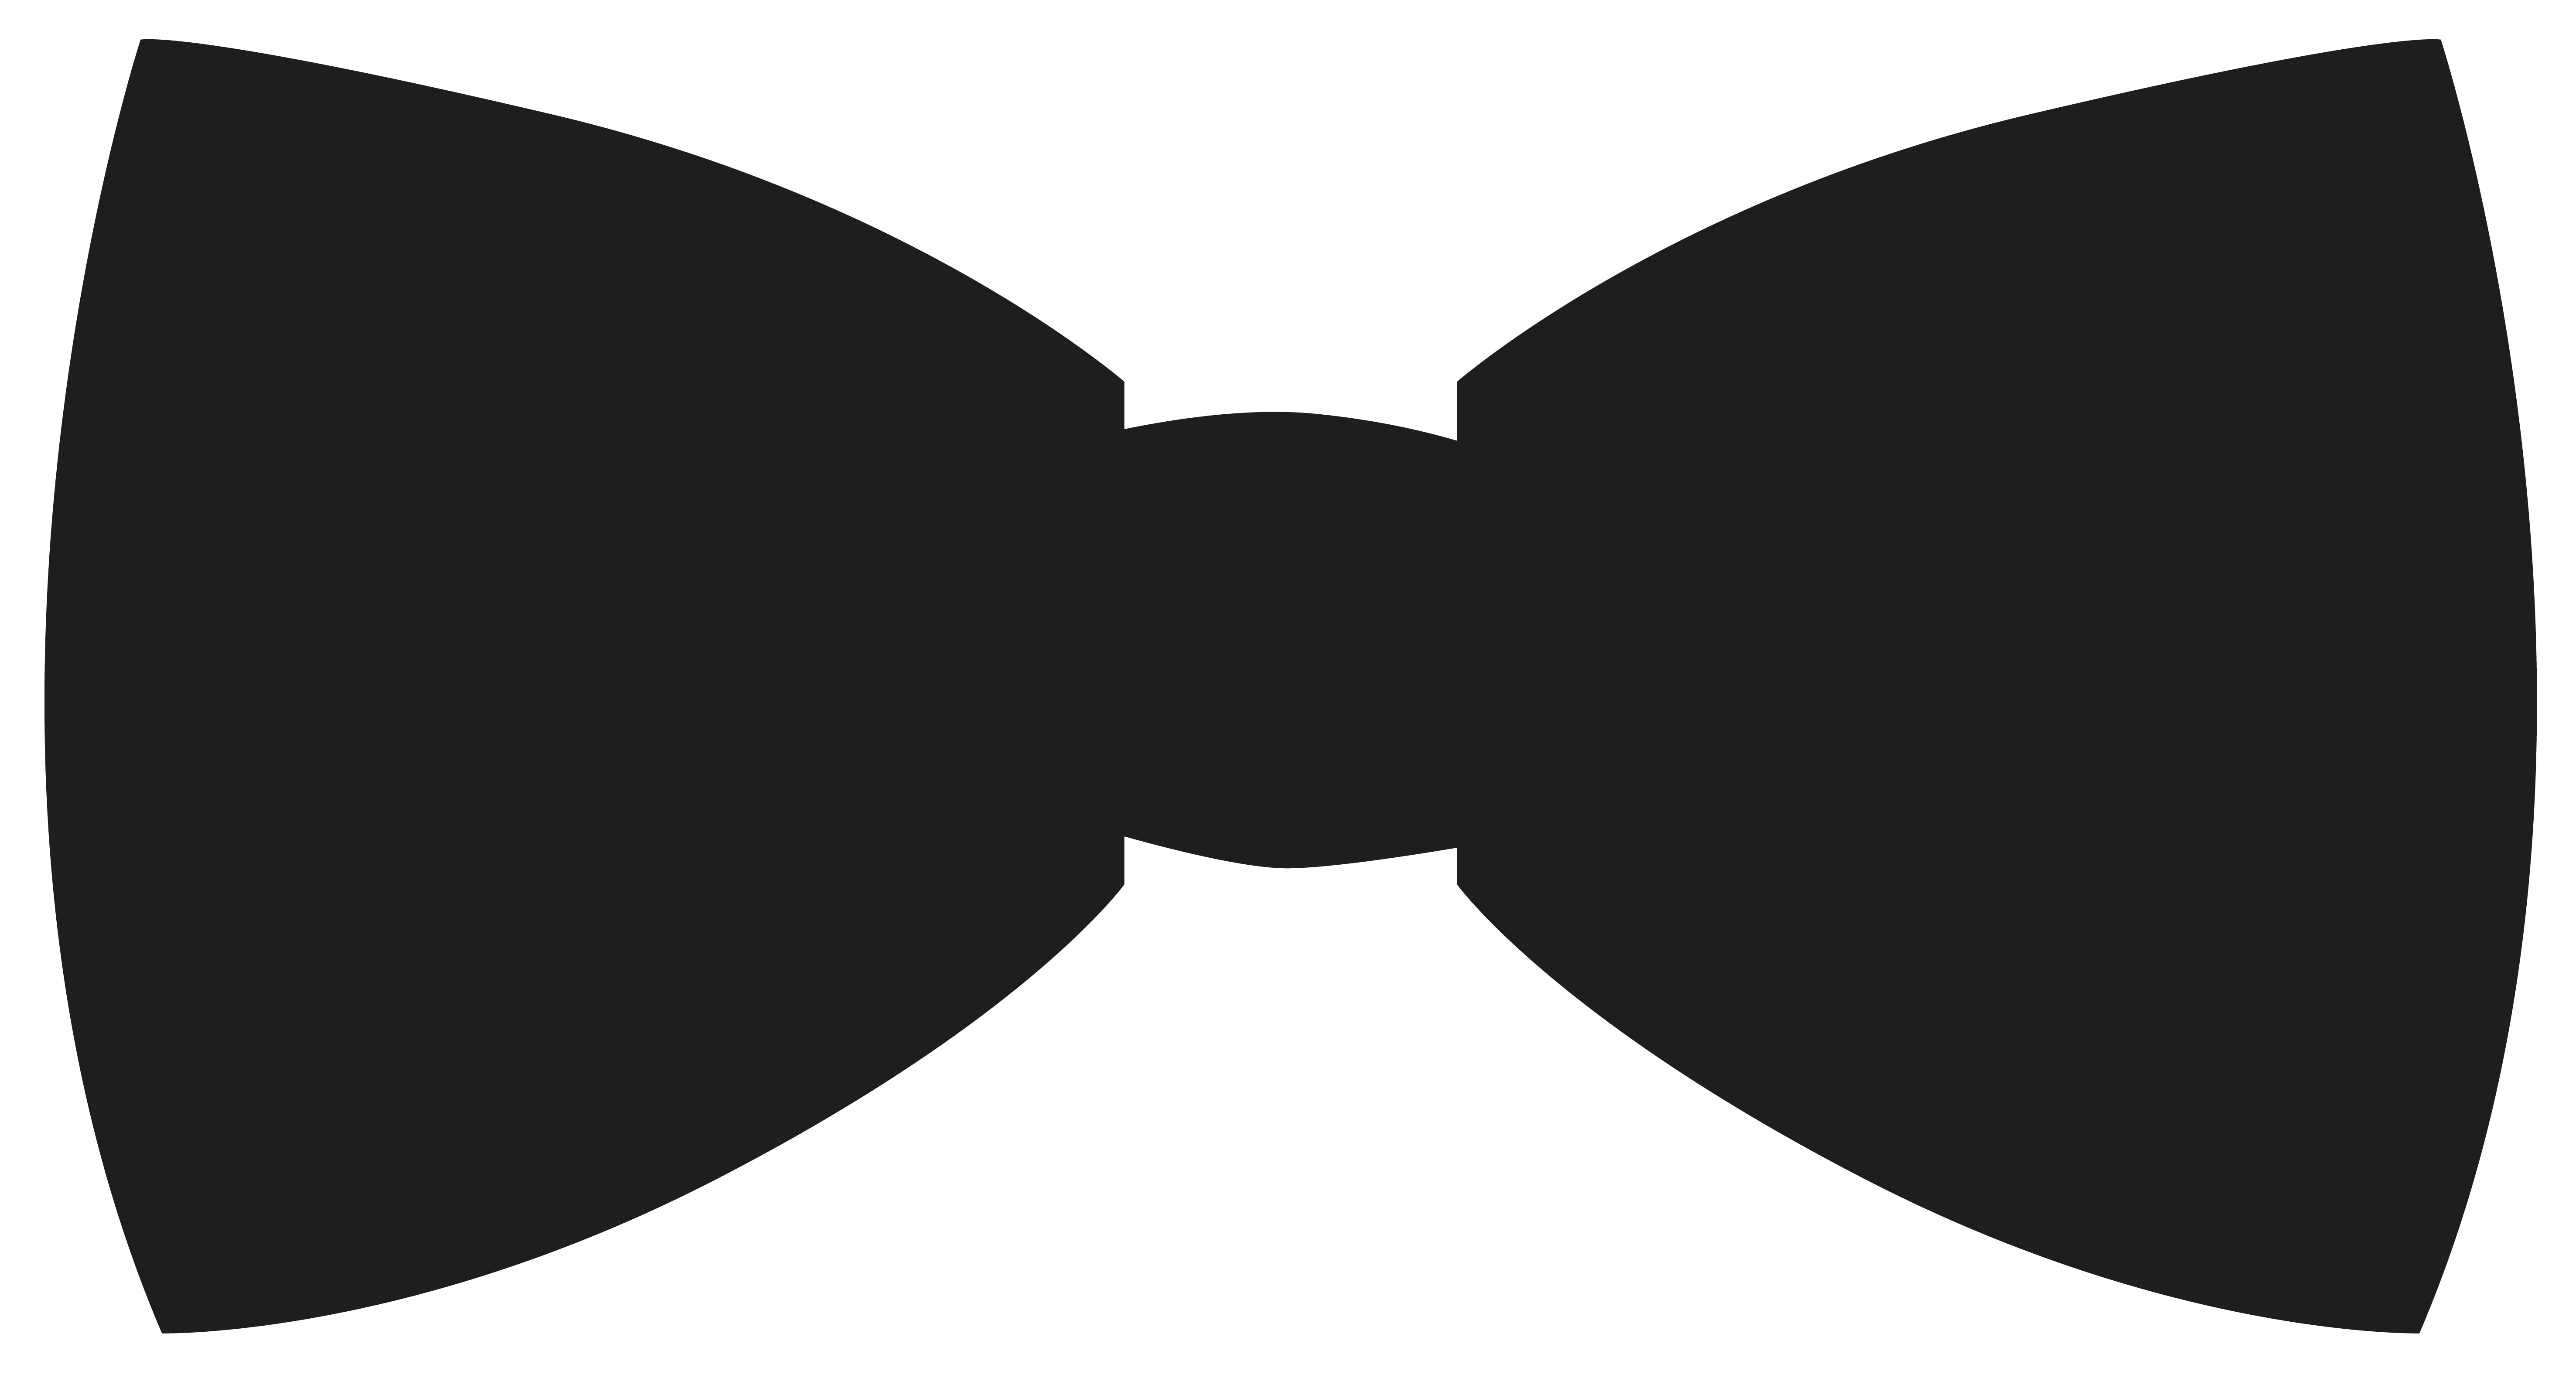 5906x3160 Clipart Bow Tie